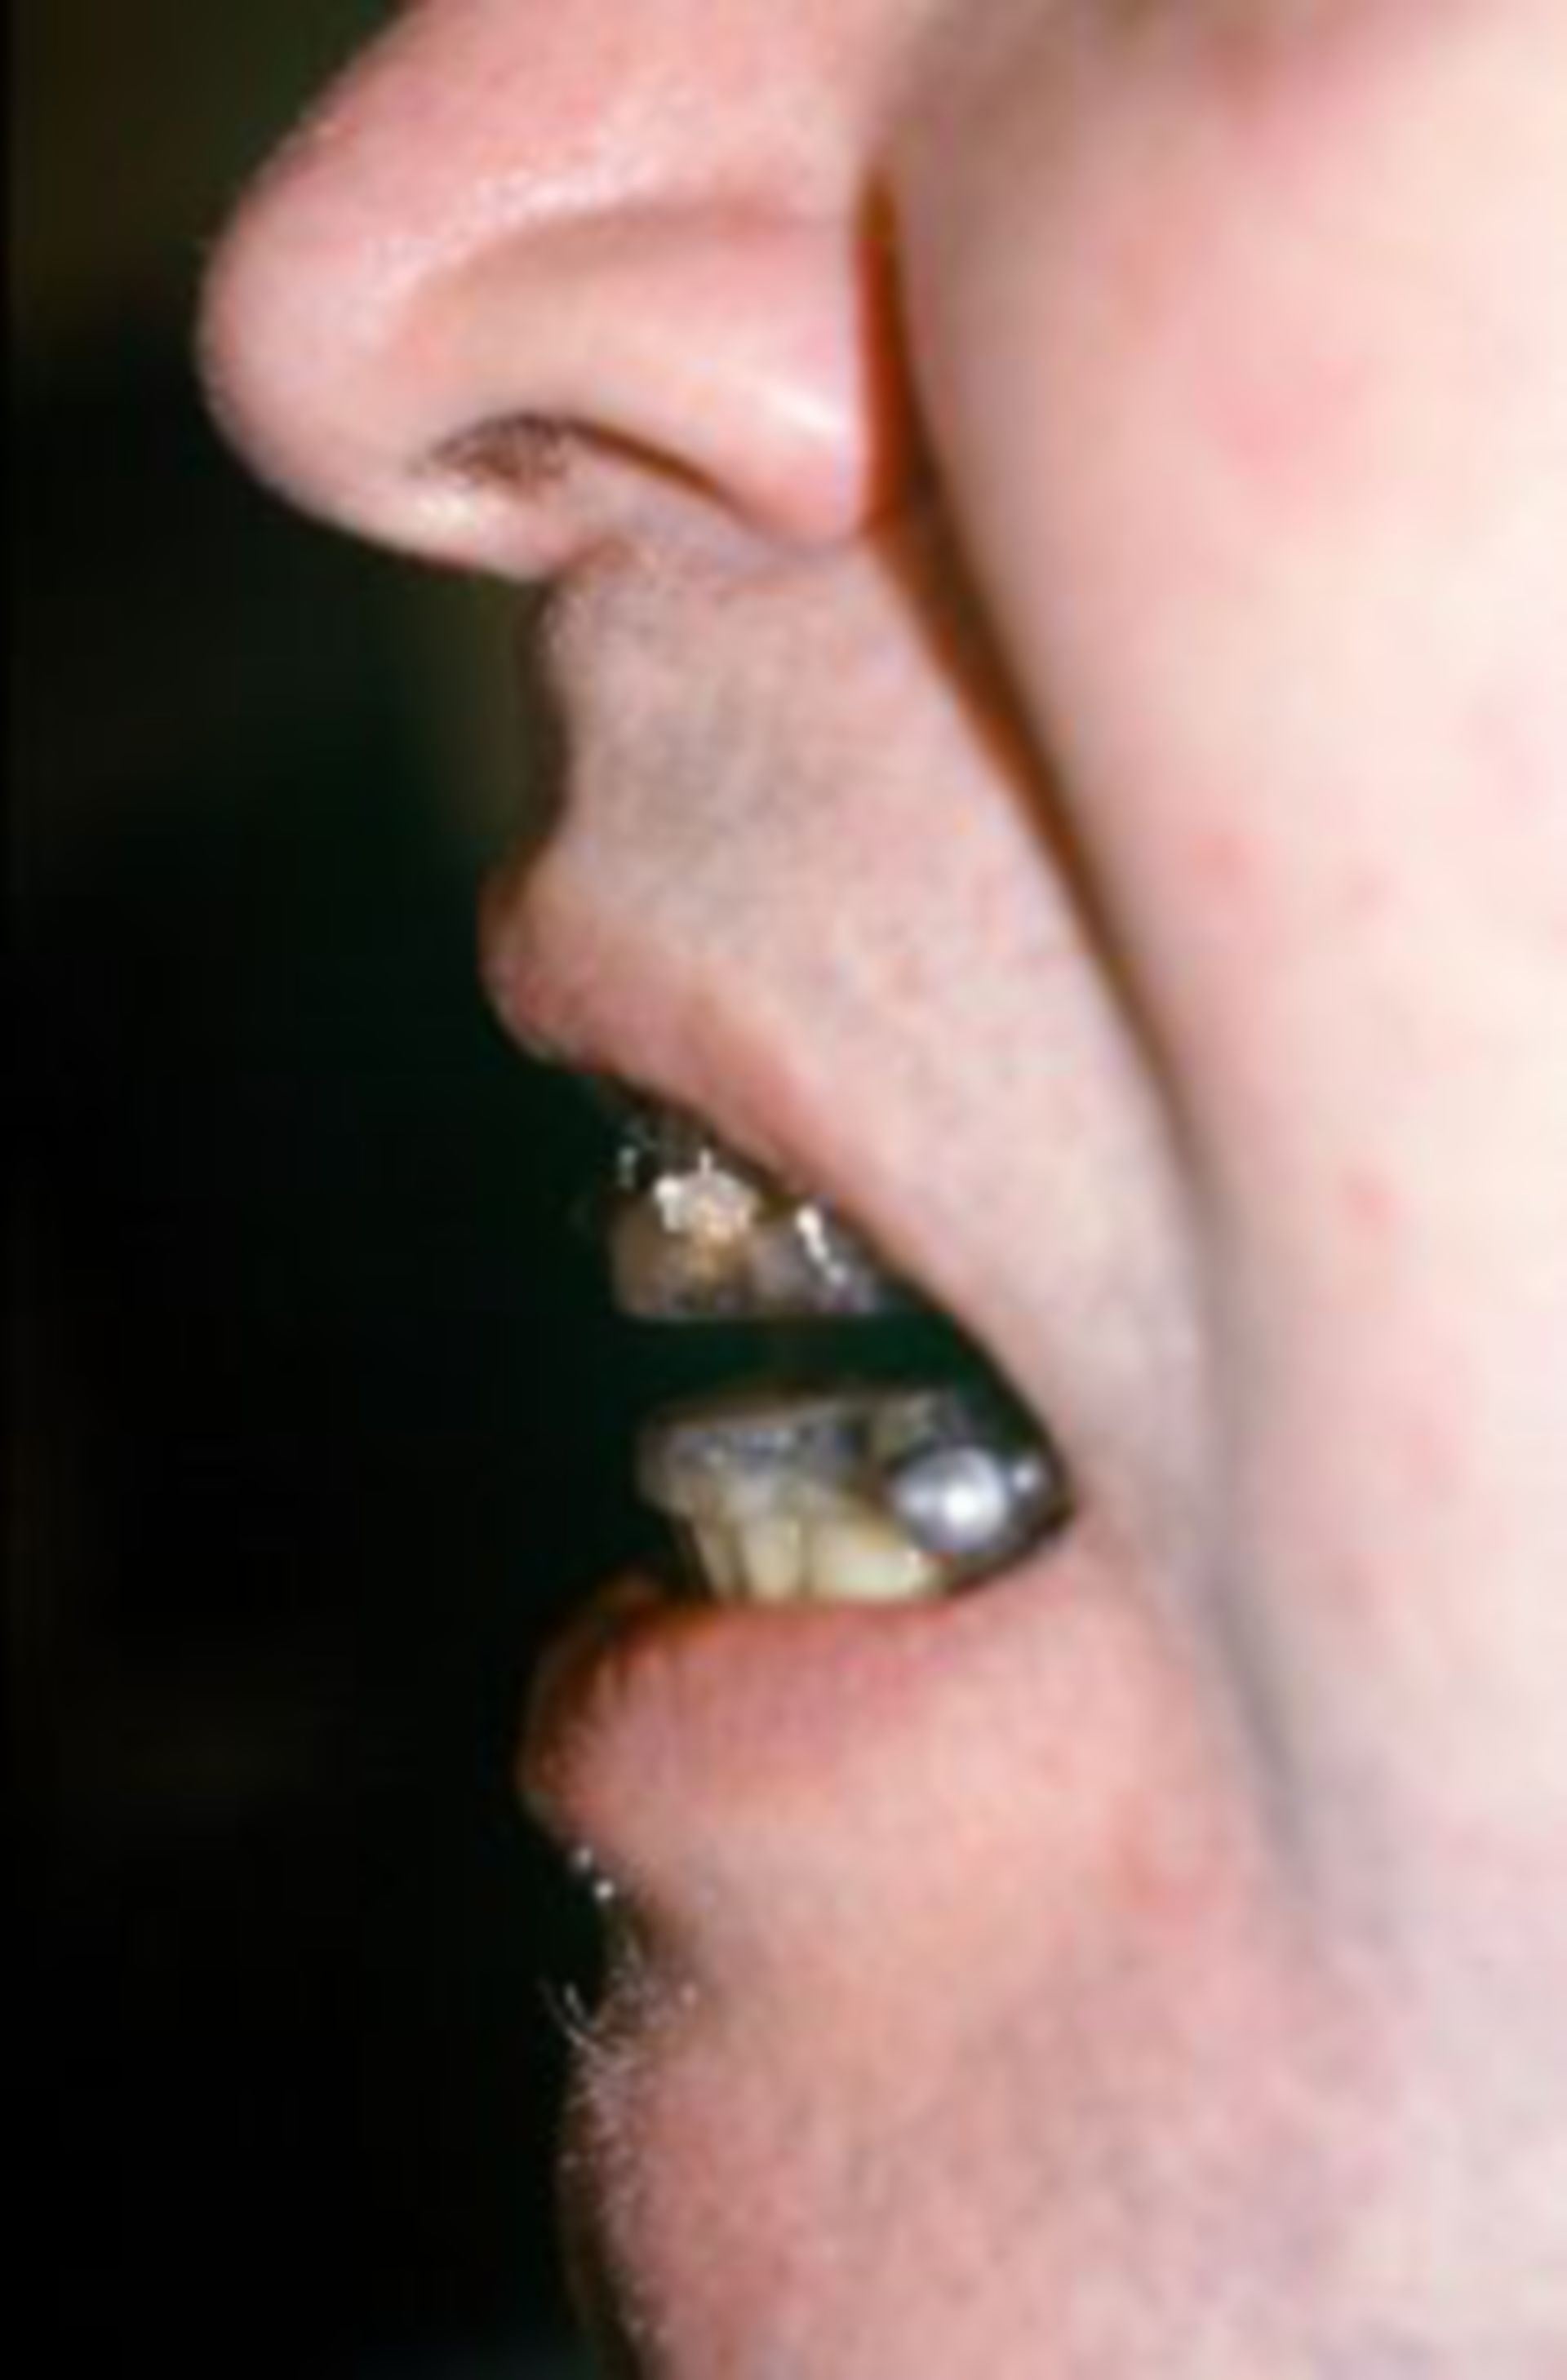 Patient with orthodontic adjustment